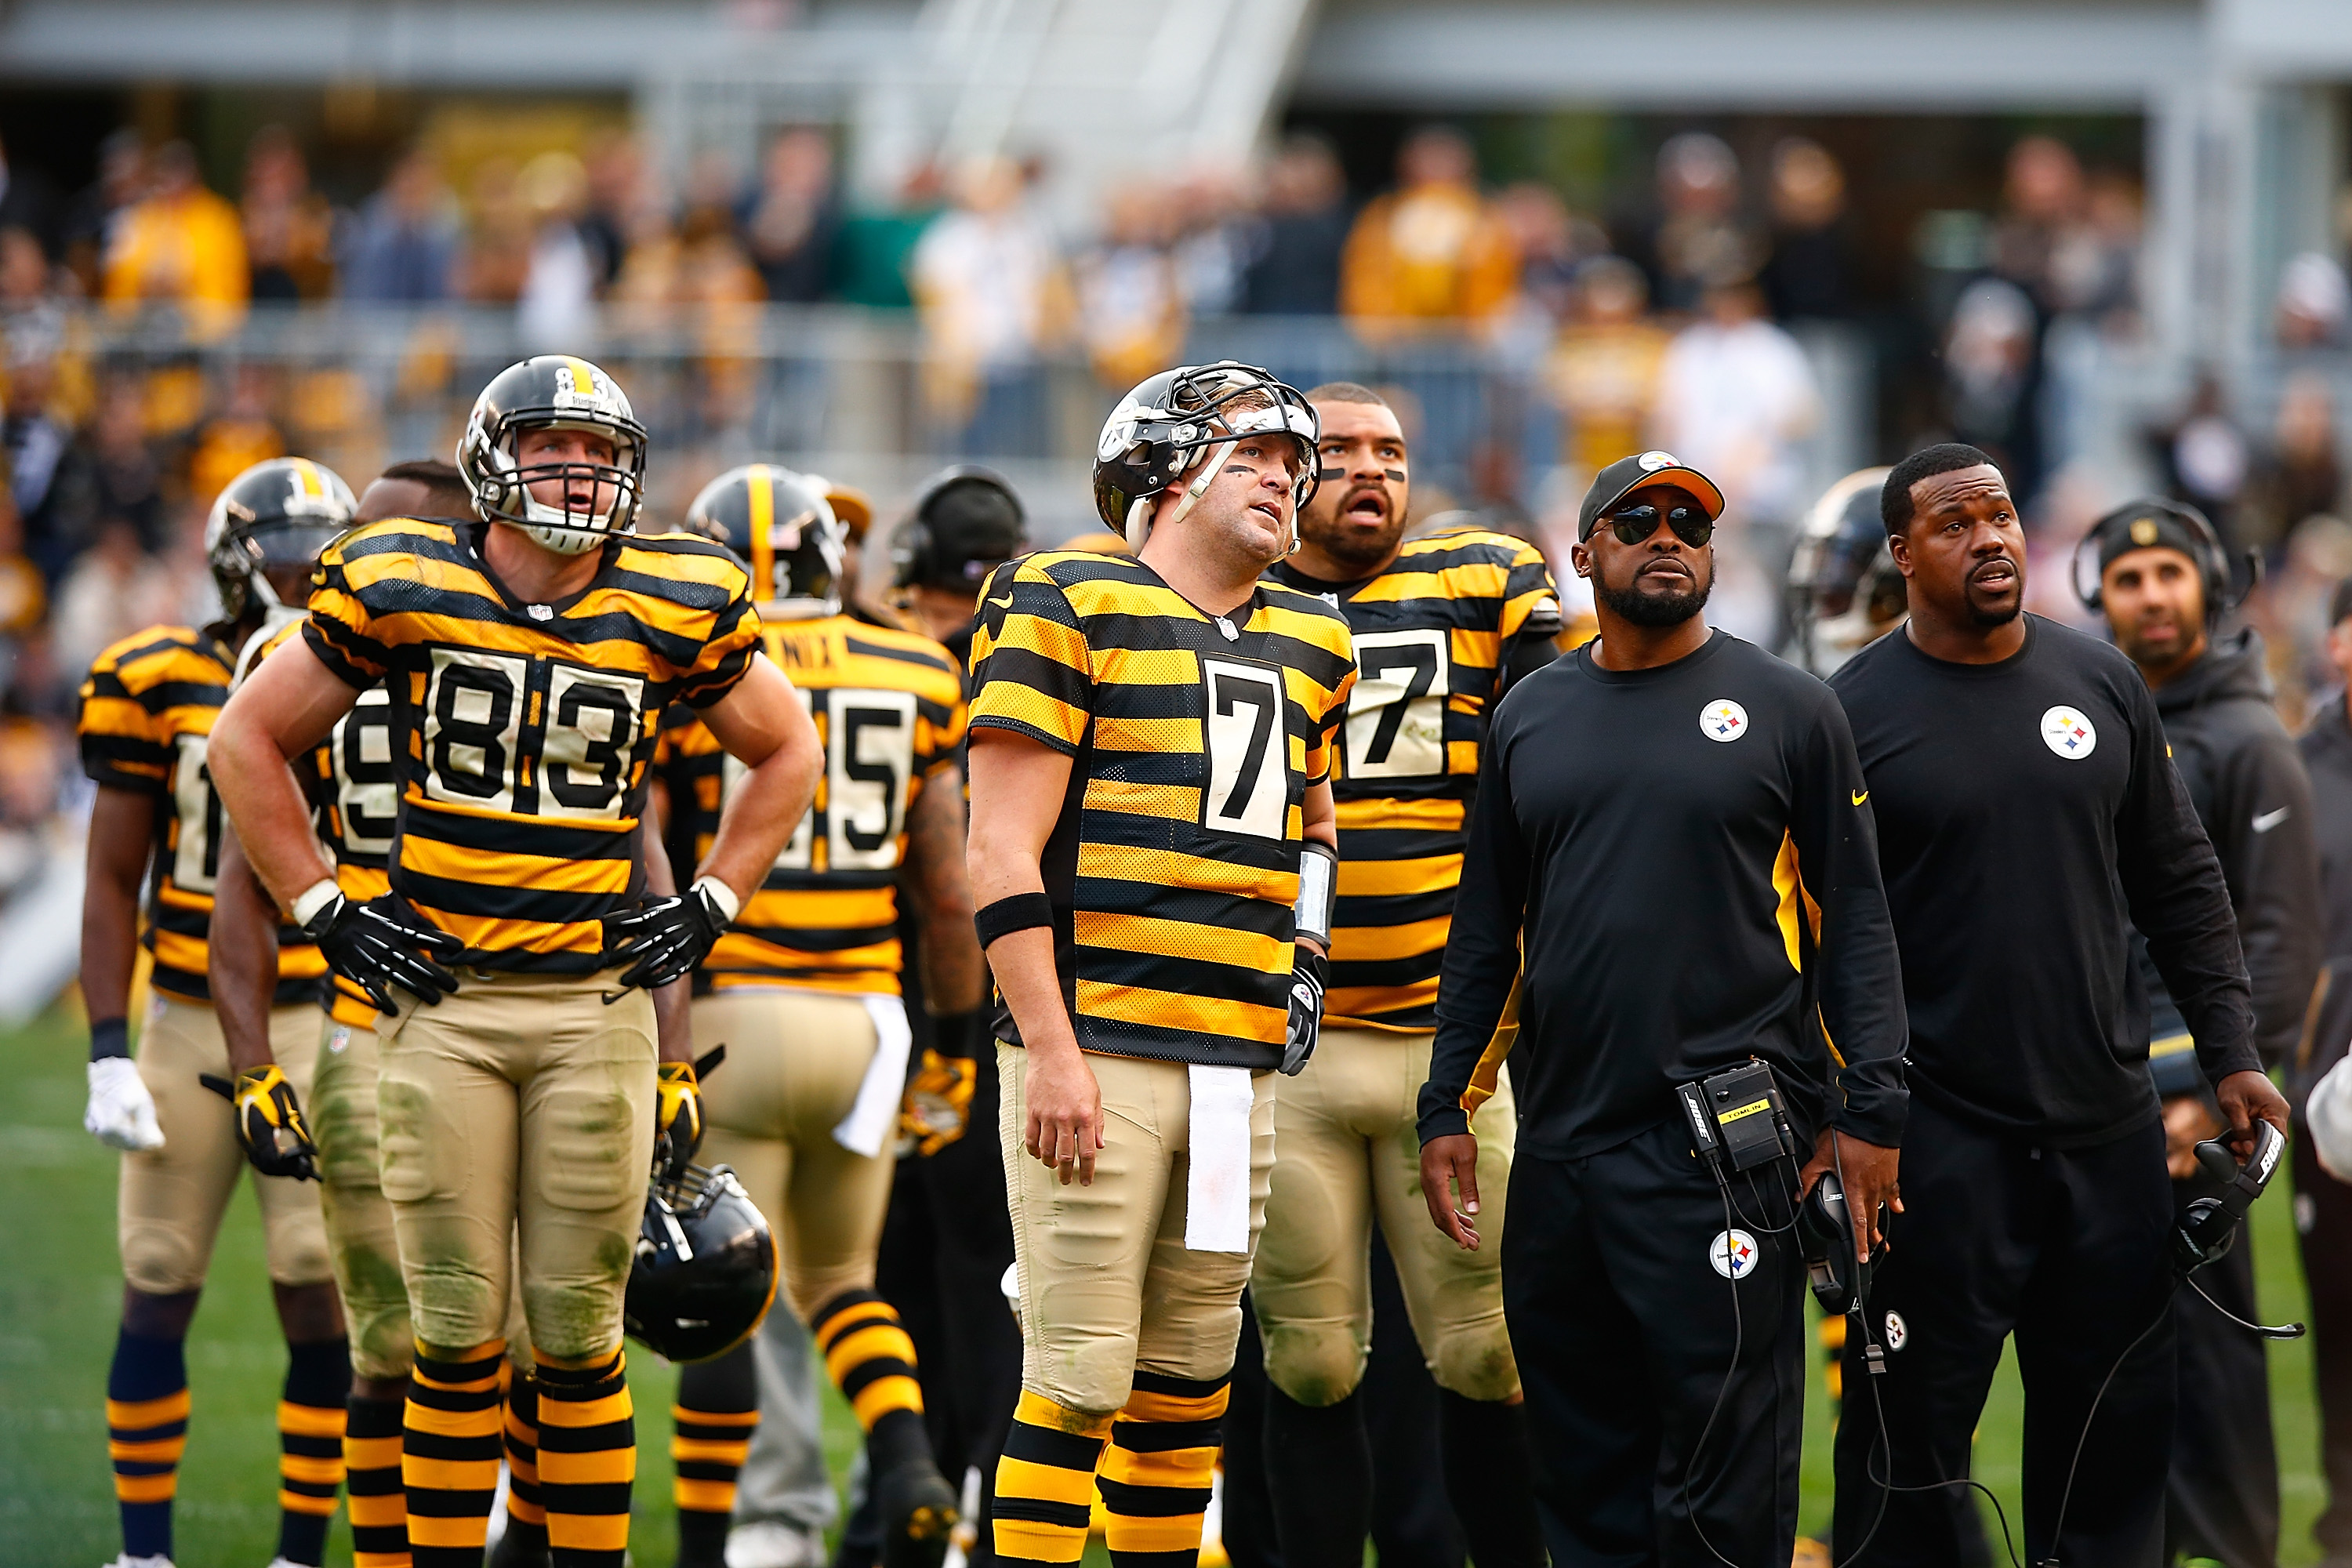 reputable site 82f64 23150 Pittsburgh Steelers are retiring their 'bumblebee' uniforms